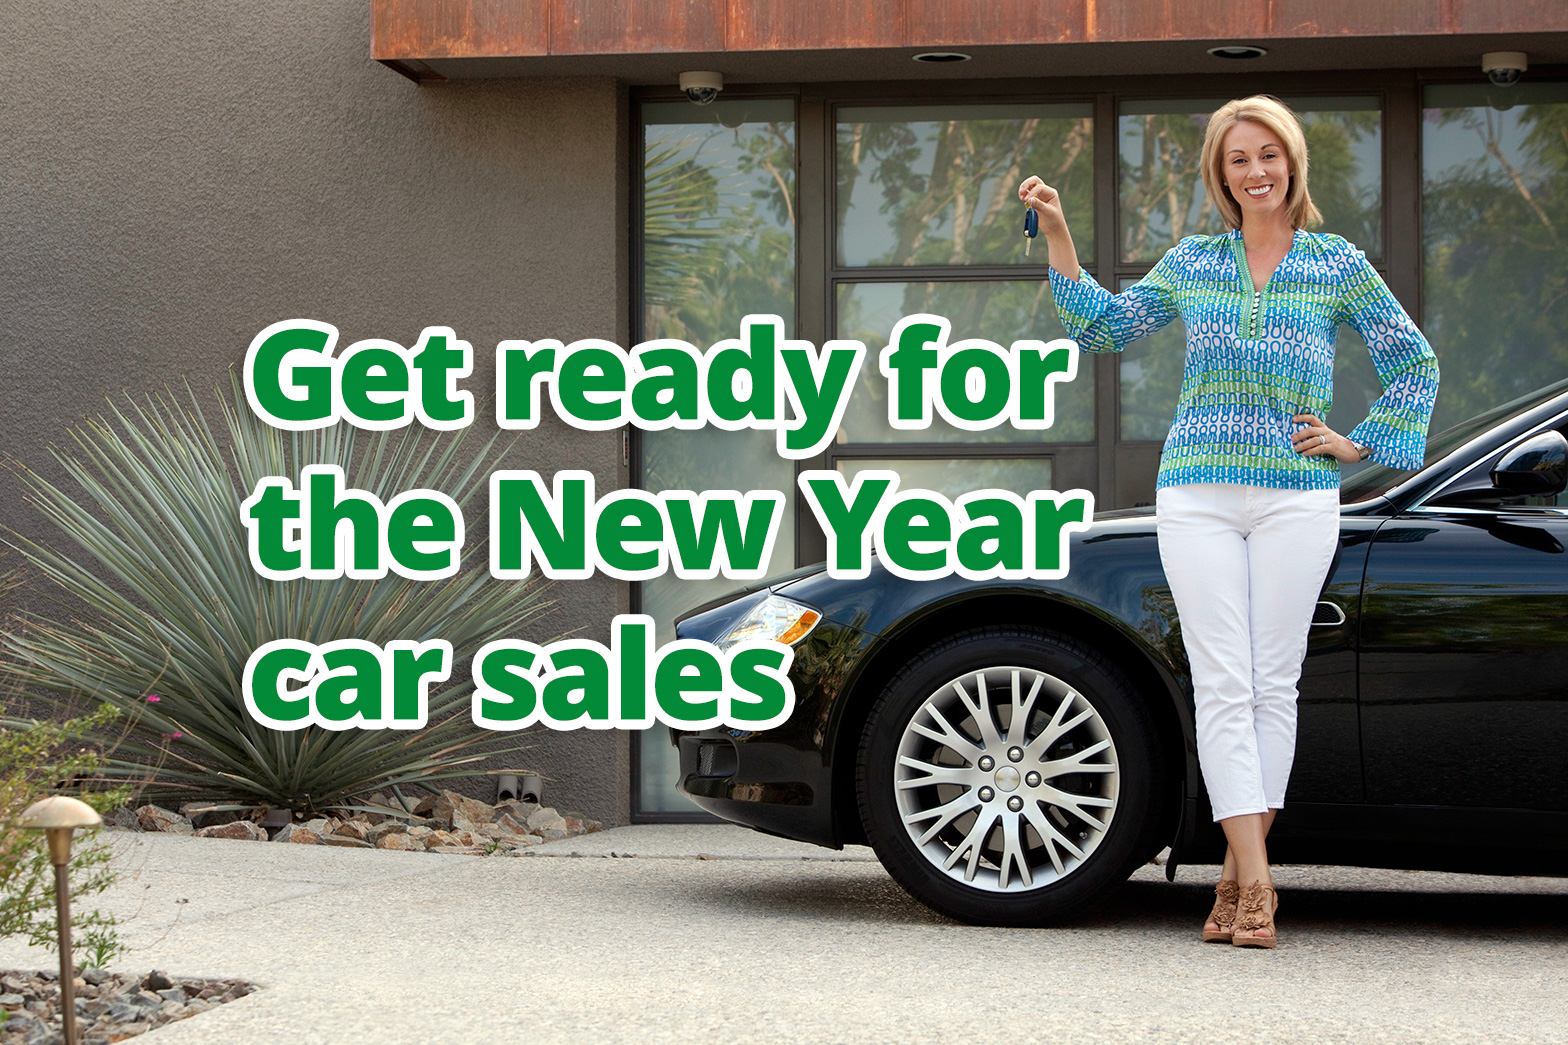 Get ready for the New Year car sales